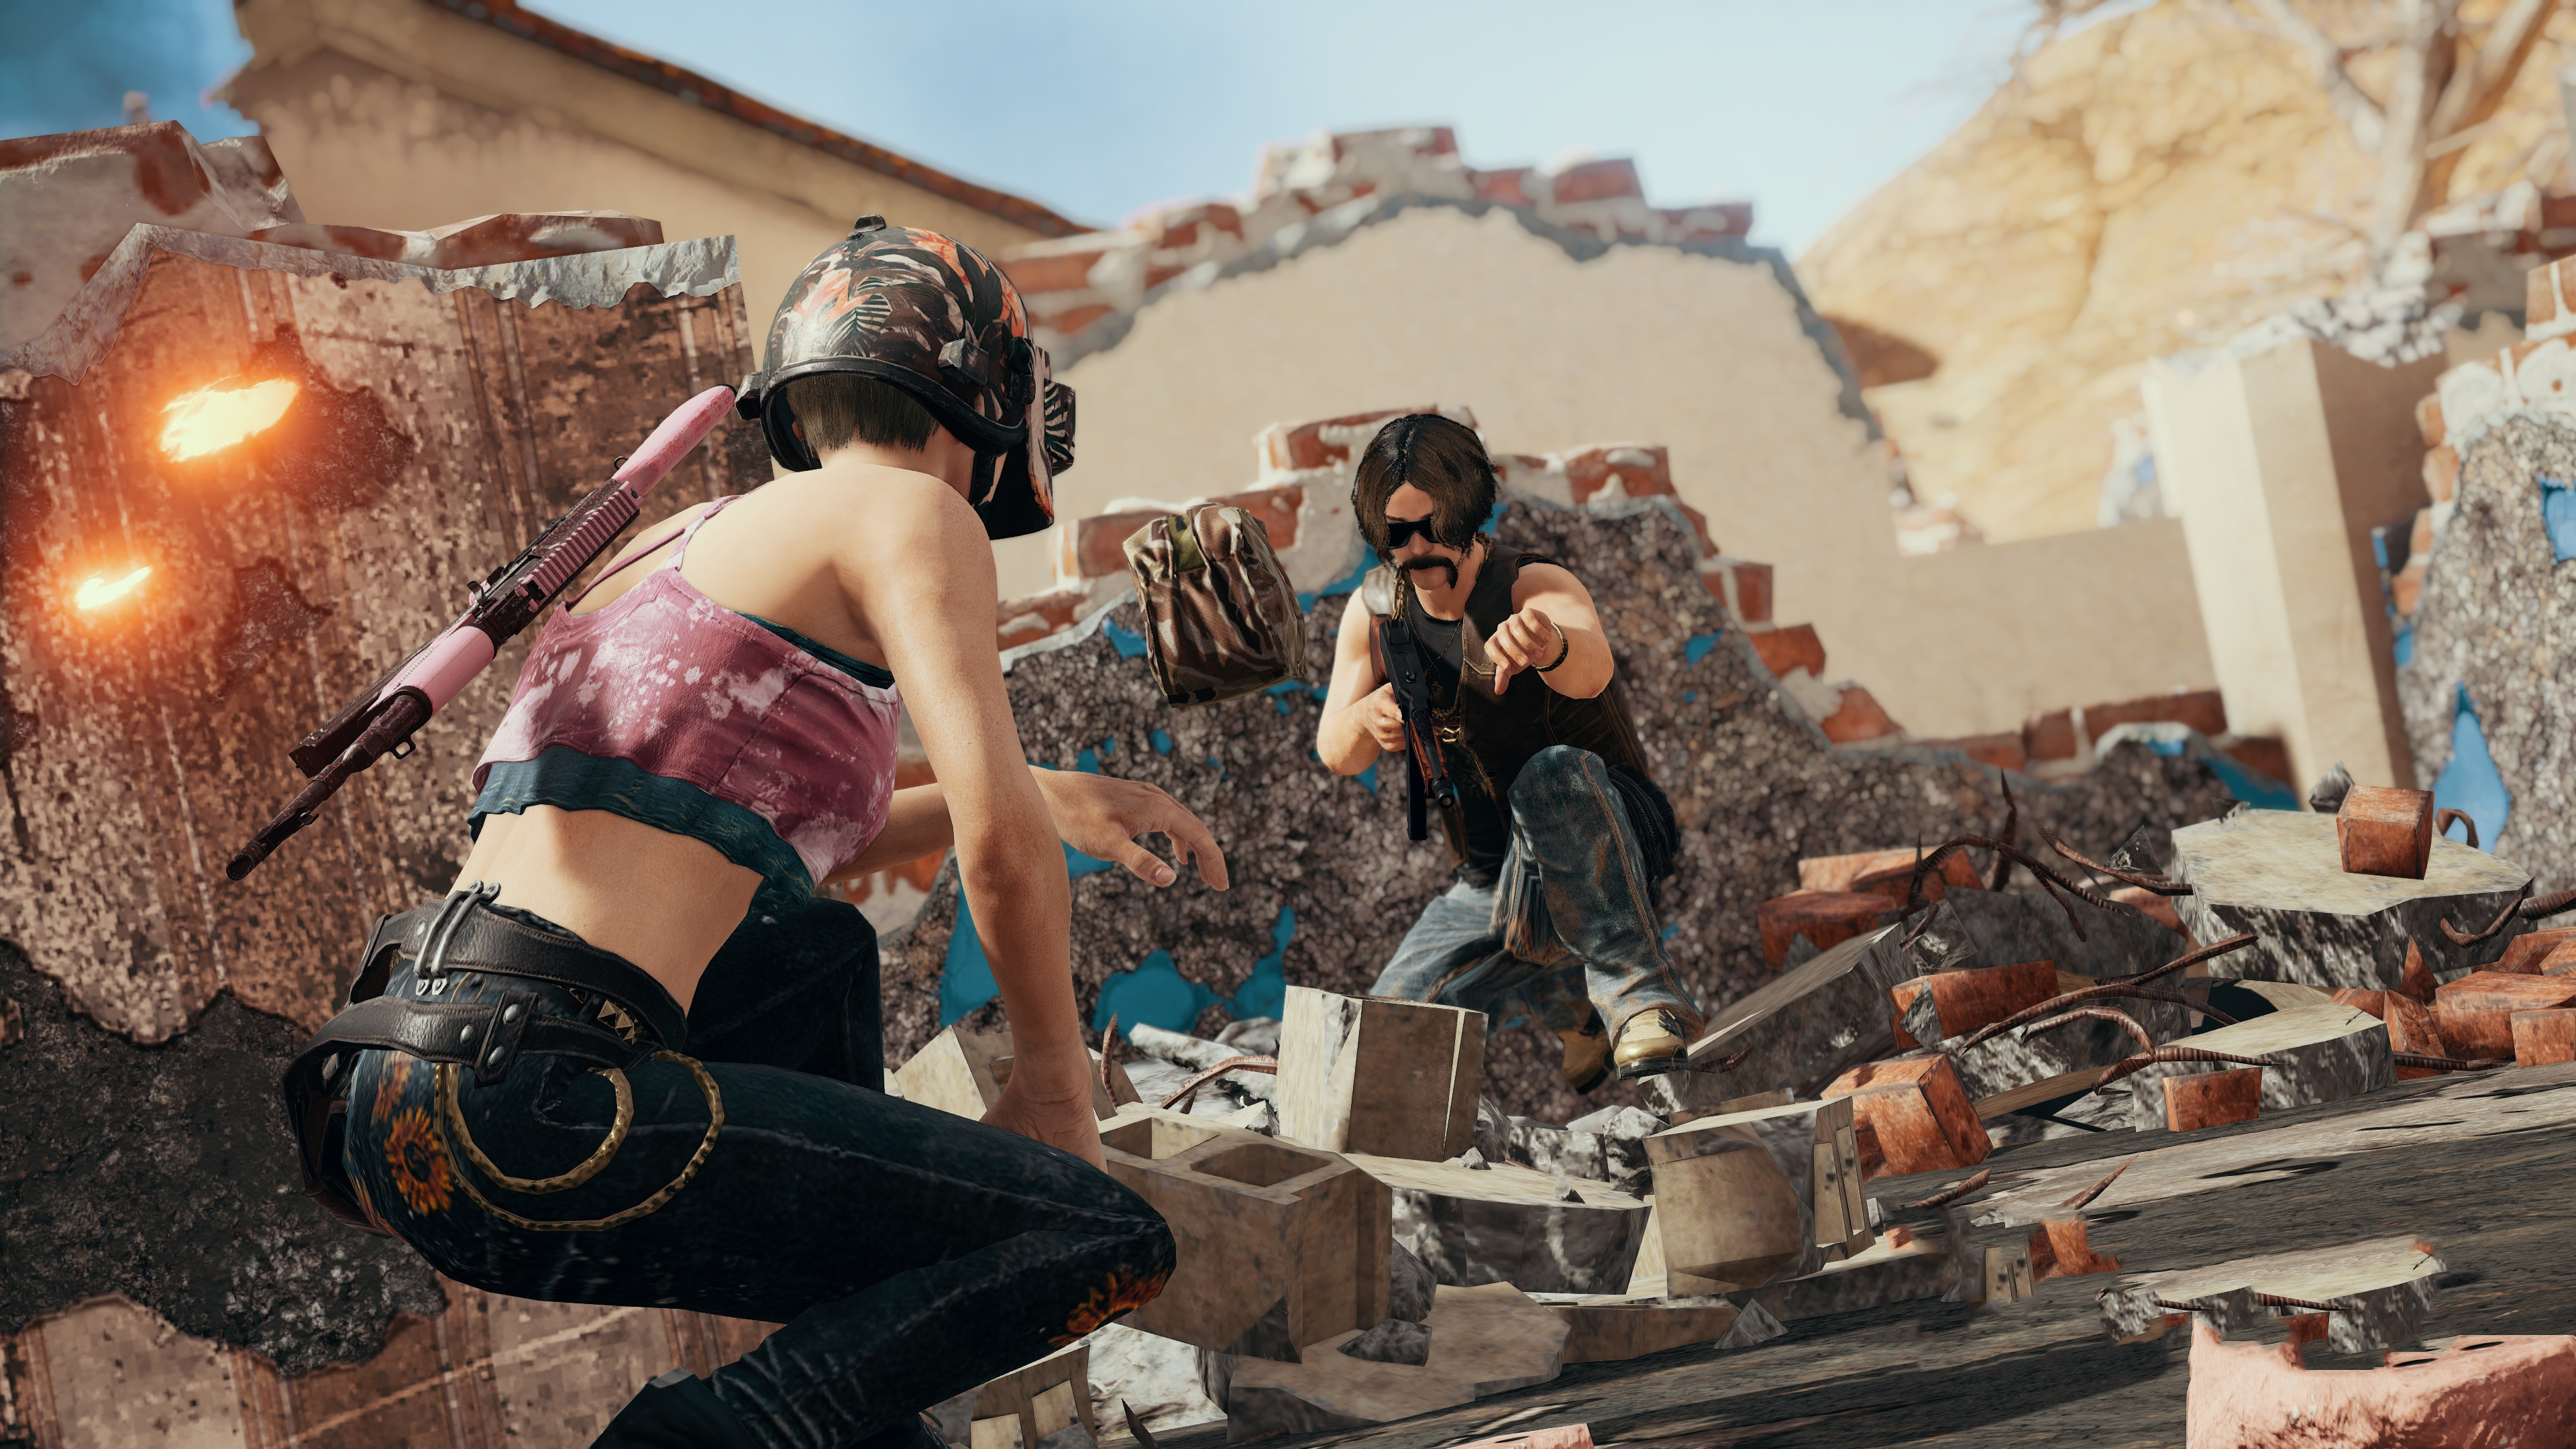 pubg 2019 new game 1572370161 - Pubg 2019 New Game - pubg wallpapers, playerunknowns battlegrounds wallpapers, hd-wallpapers, games wallpapers, 4k-wallpapers, 2019 games wallpapers